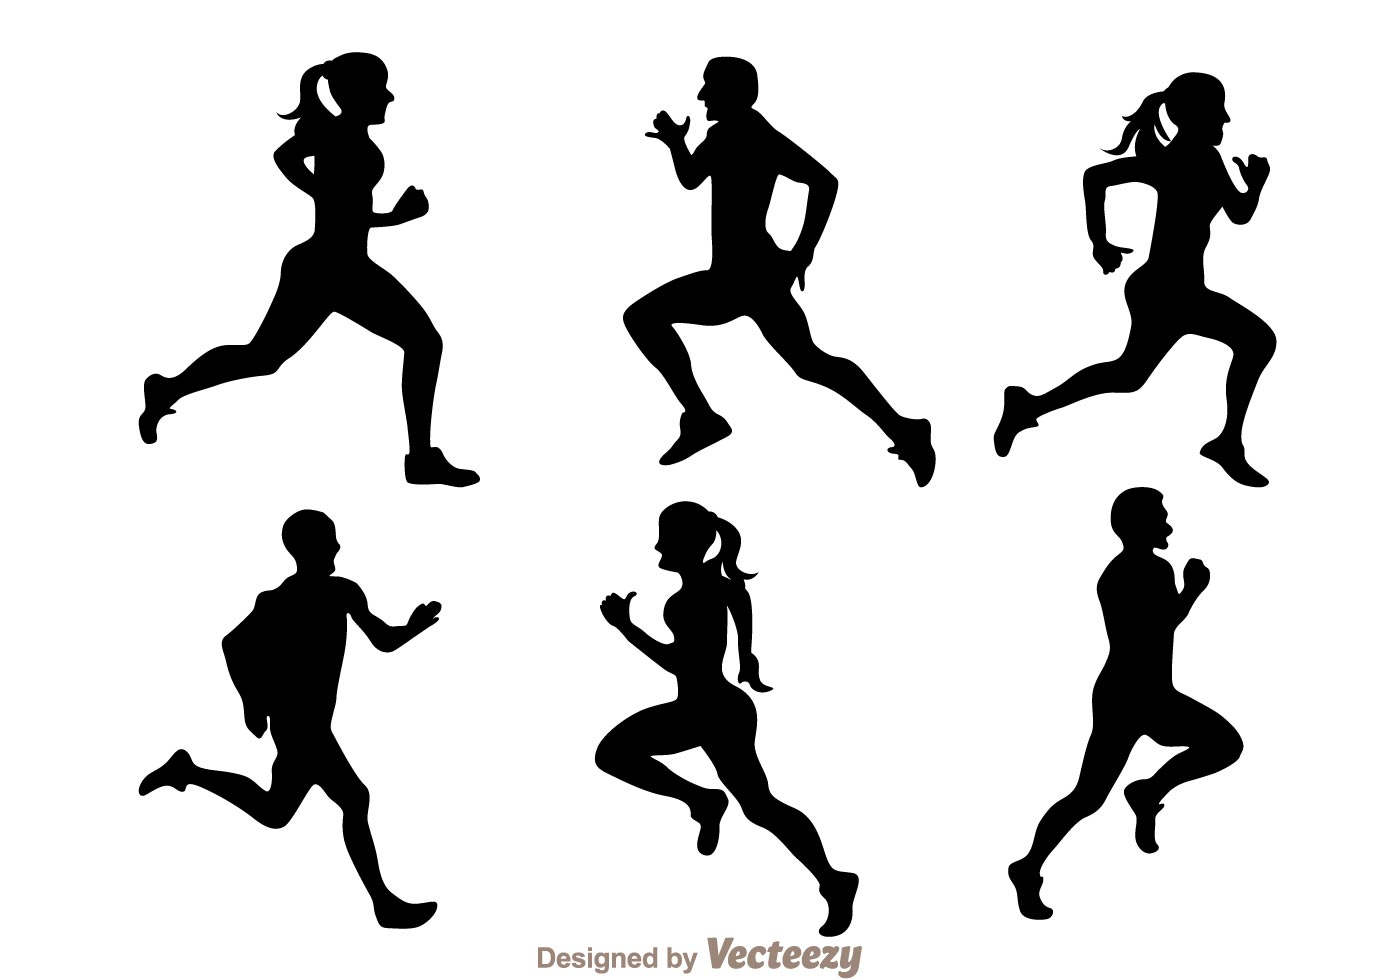 Running Silhouette Vectors - Download Free Vector Art ...